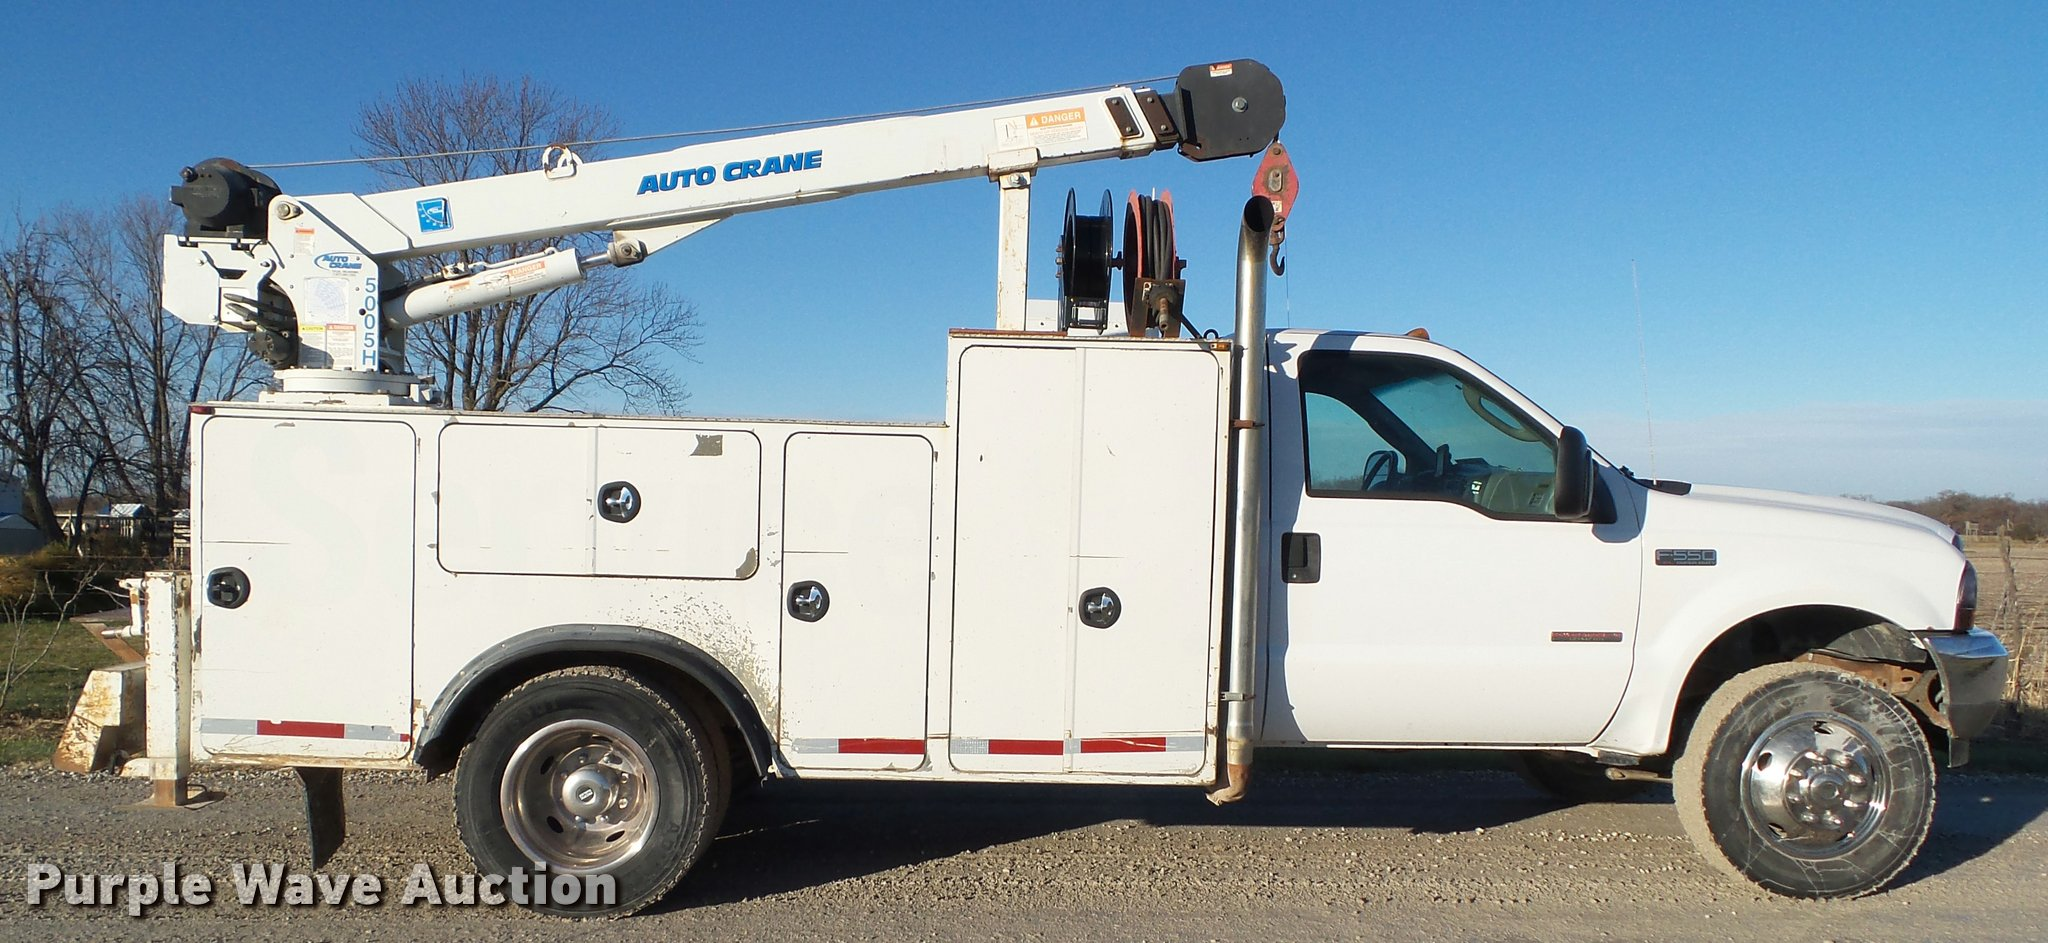 2004 Ford F550 Super Duty Service Truck With Crane Item L5 Full Size In New Window